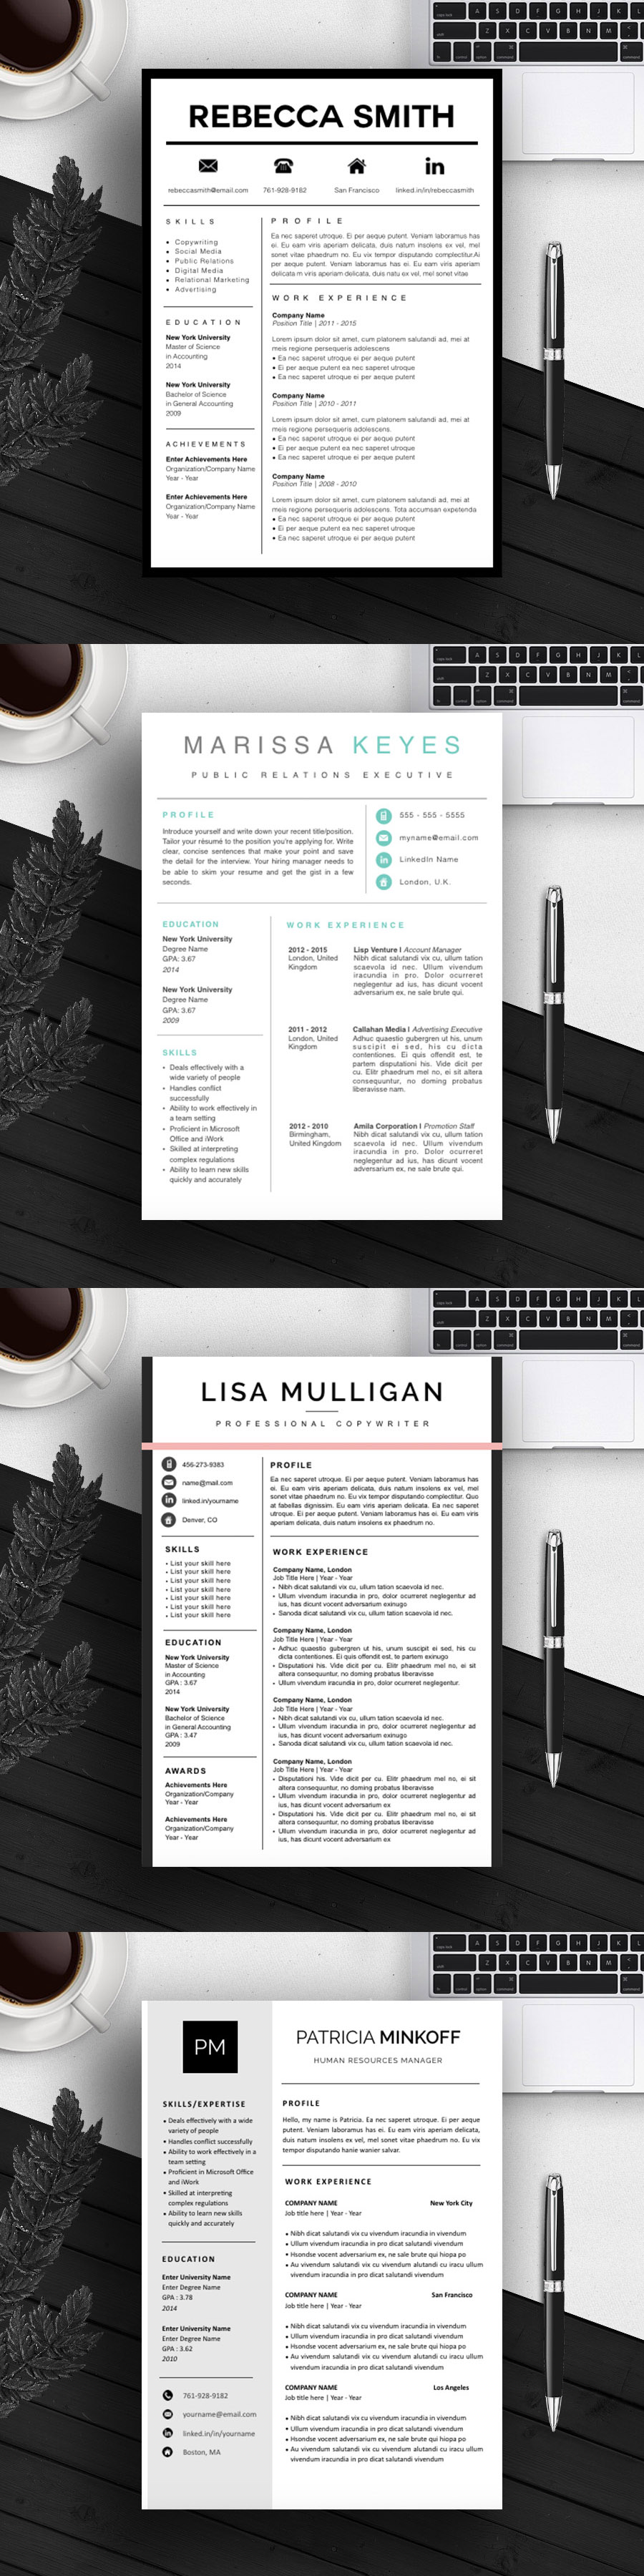 Professional And Clean Resume Cv Design Cover Letter Template